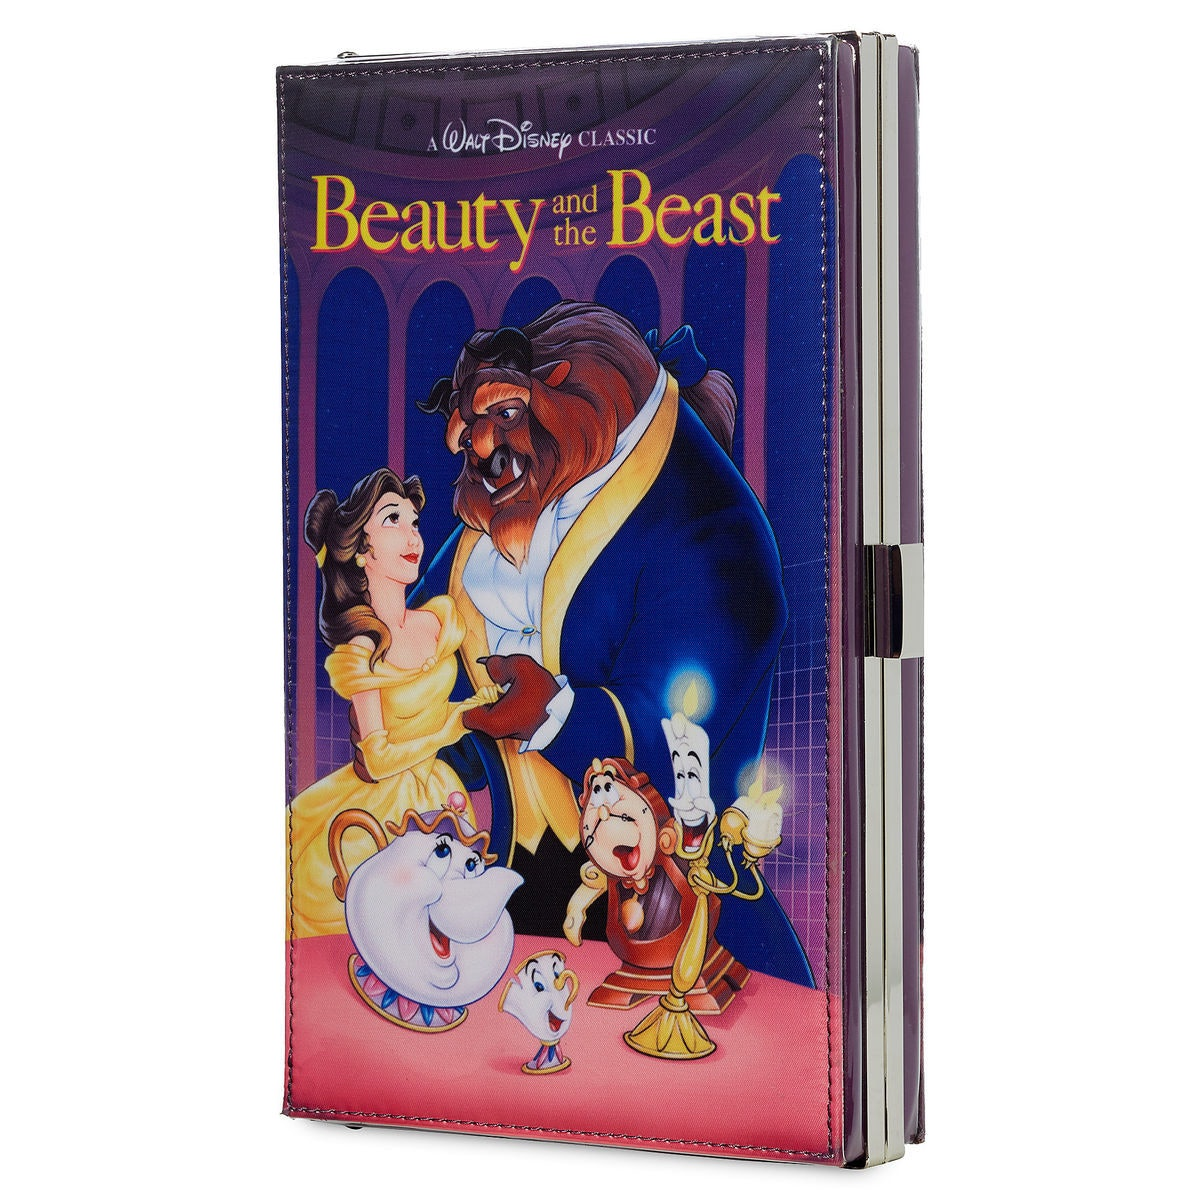 Beauty and the Beast ''VHS Case'' Clutch Bag - Oh My Disney